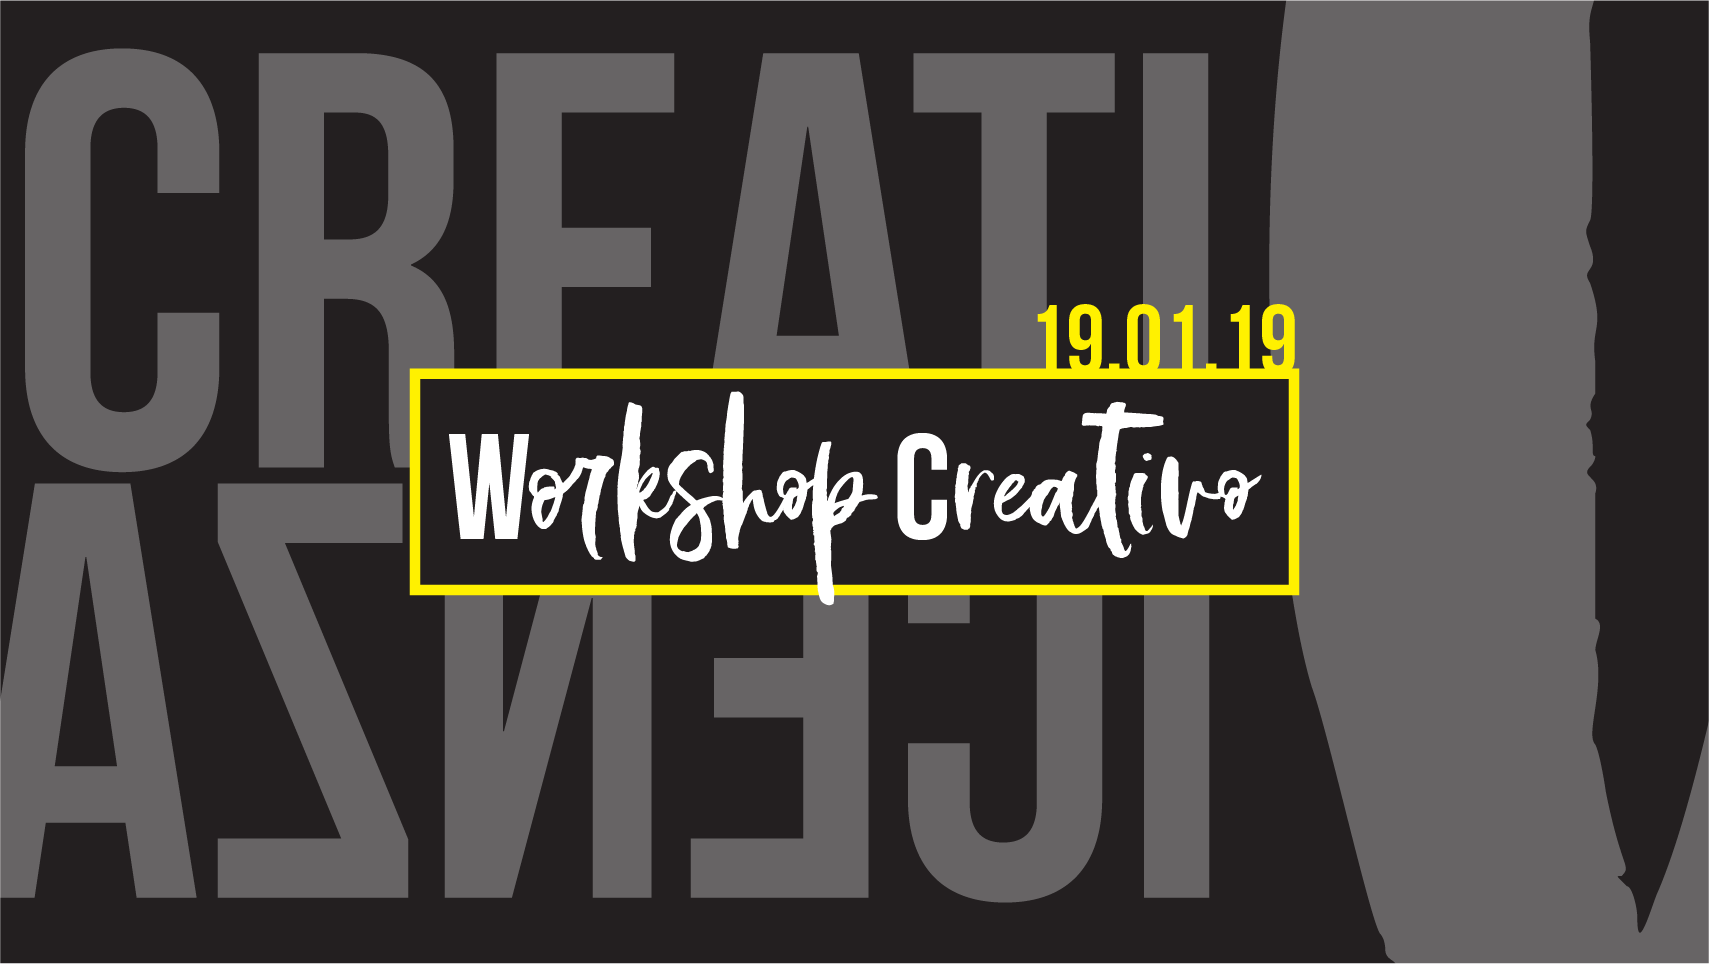 CREATIVICENZA_meeting_2019_01_19